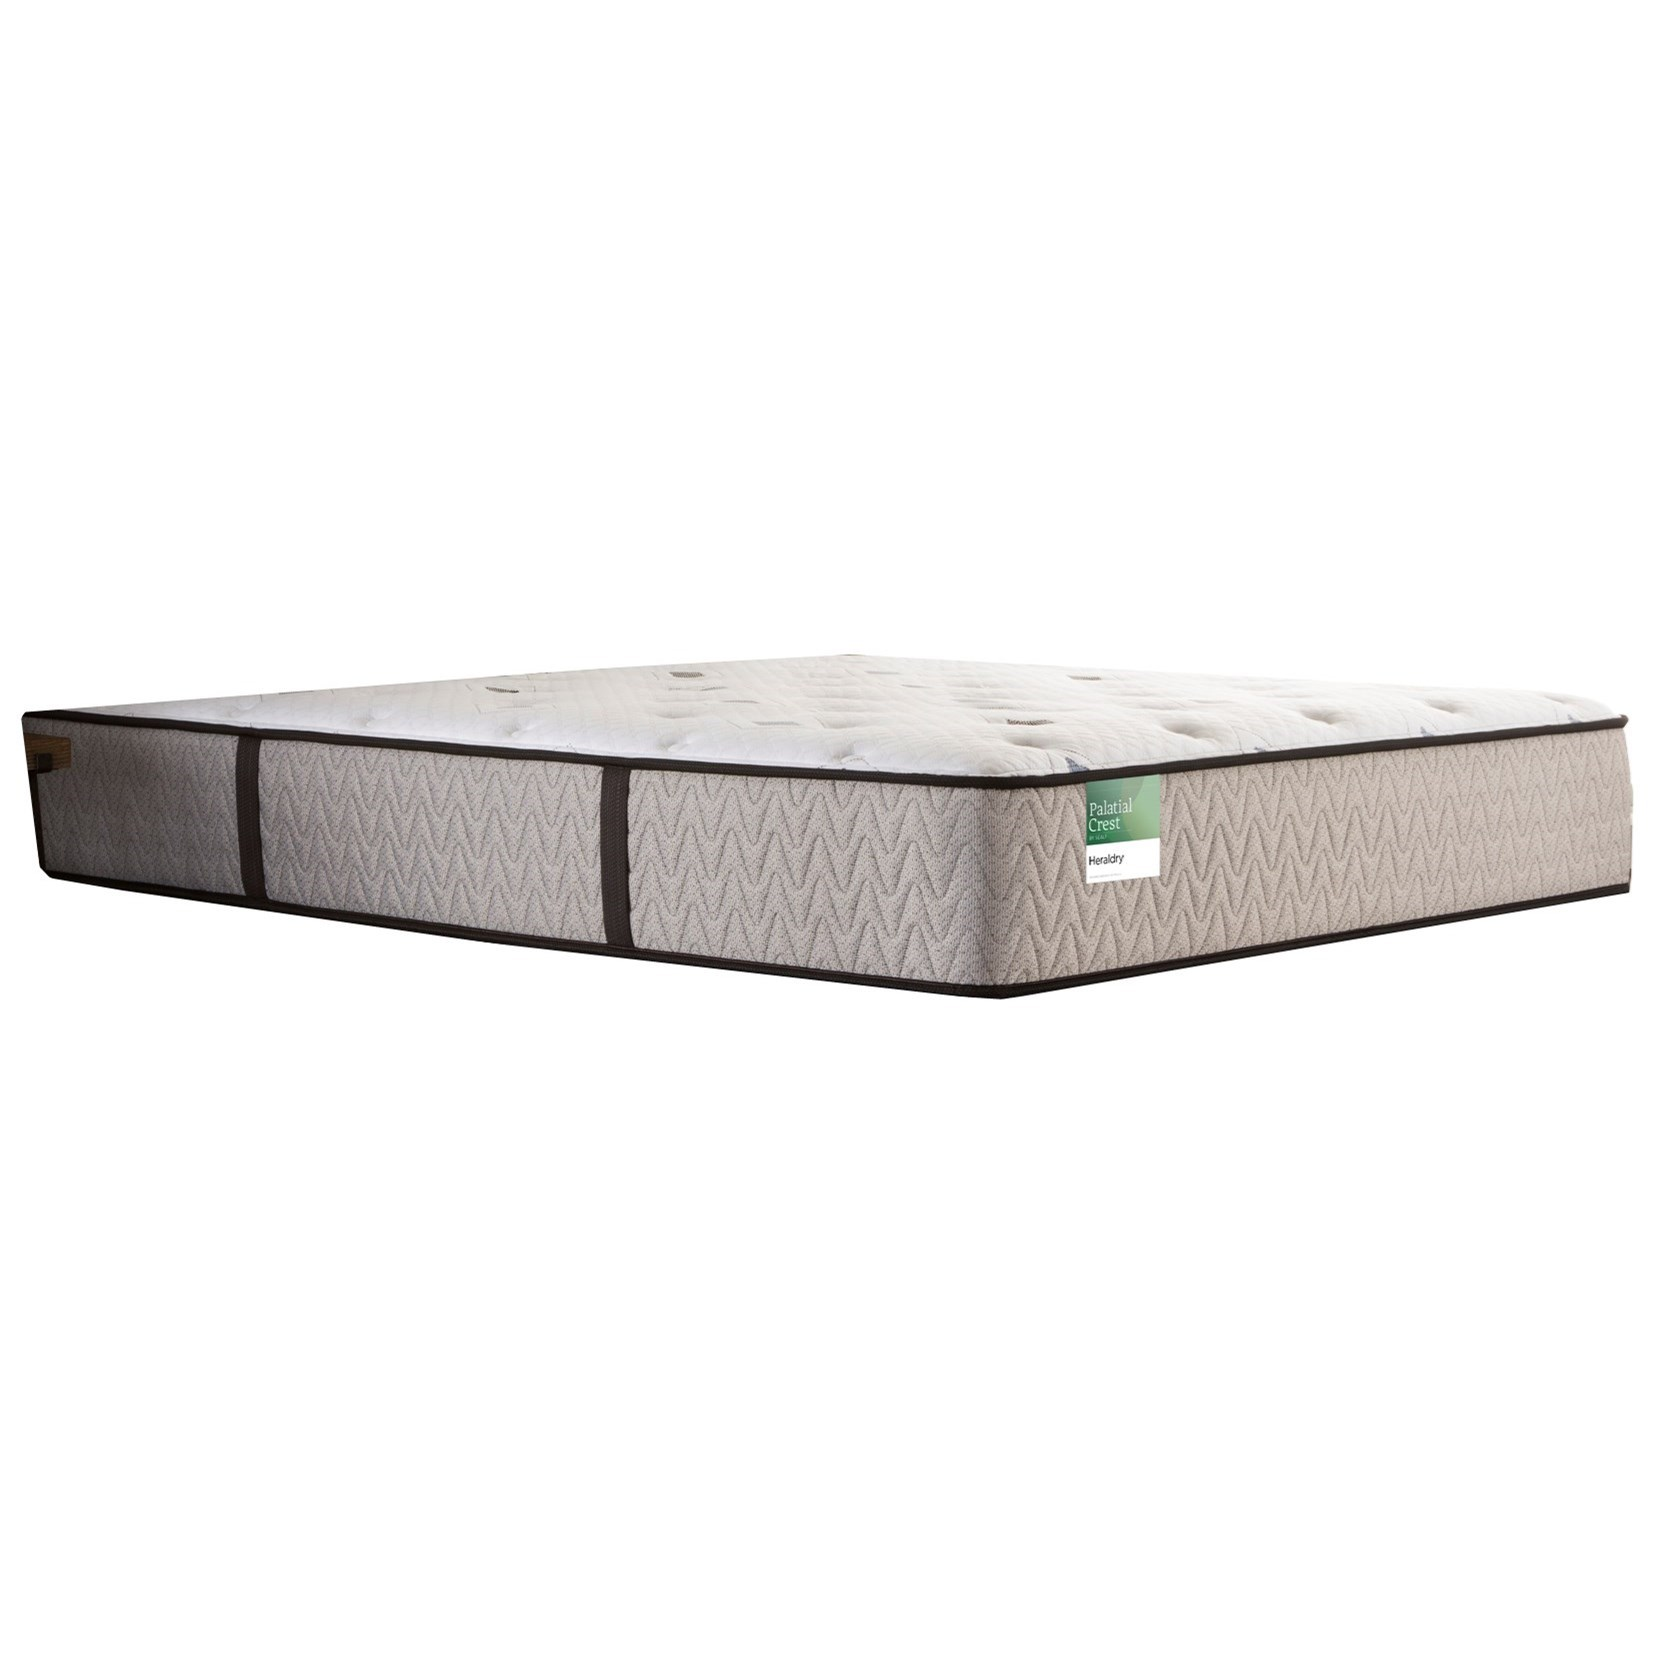 "Cal King 12 1/2"" Plush Mattress"